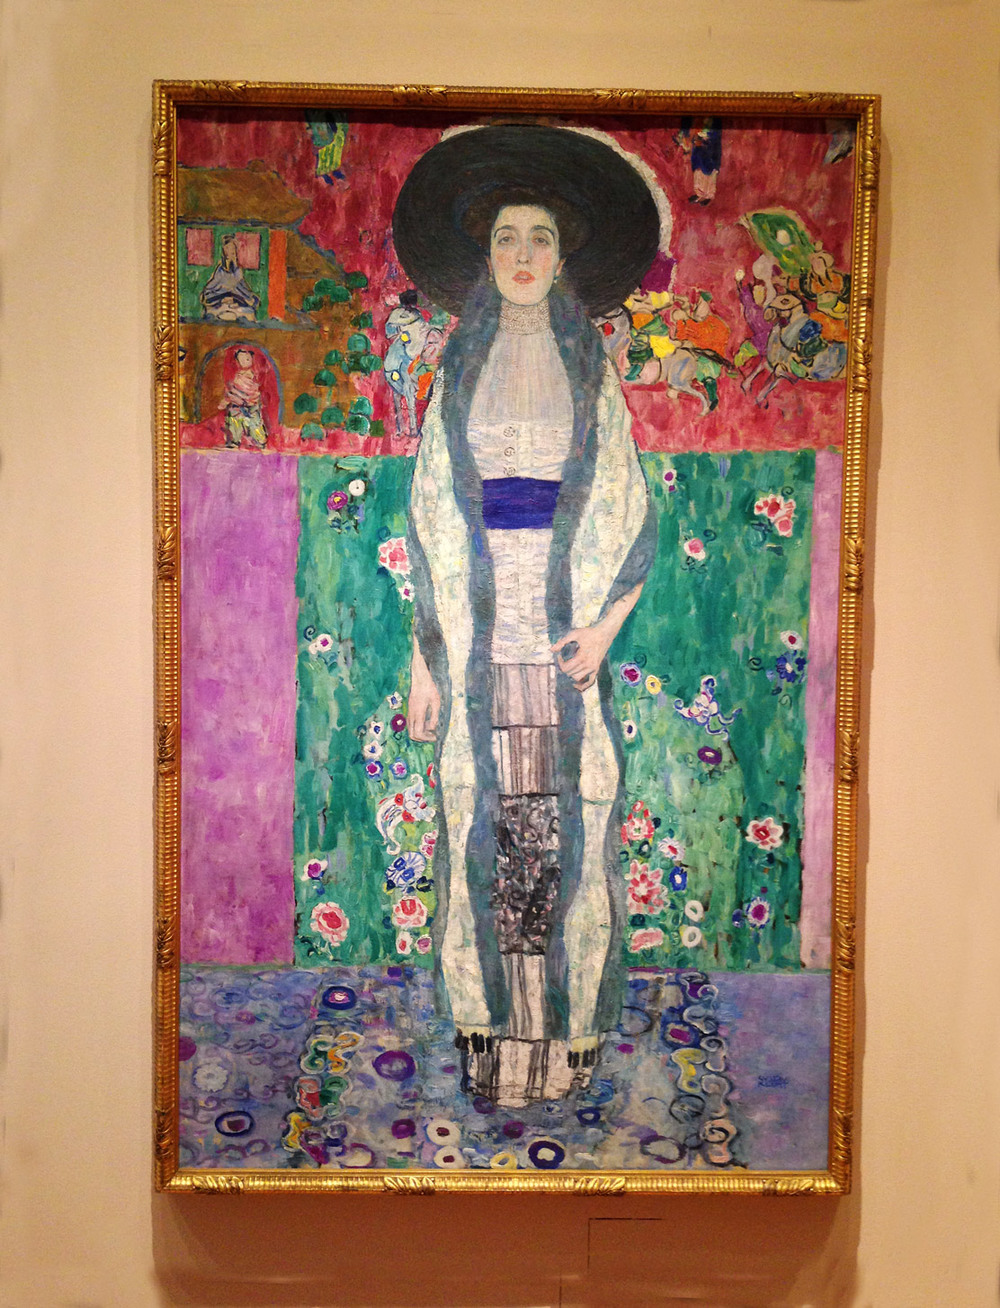 I love the colors in this Klimt portrait.